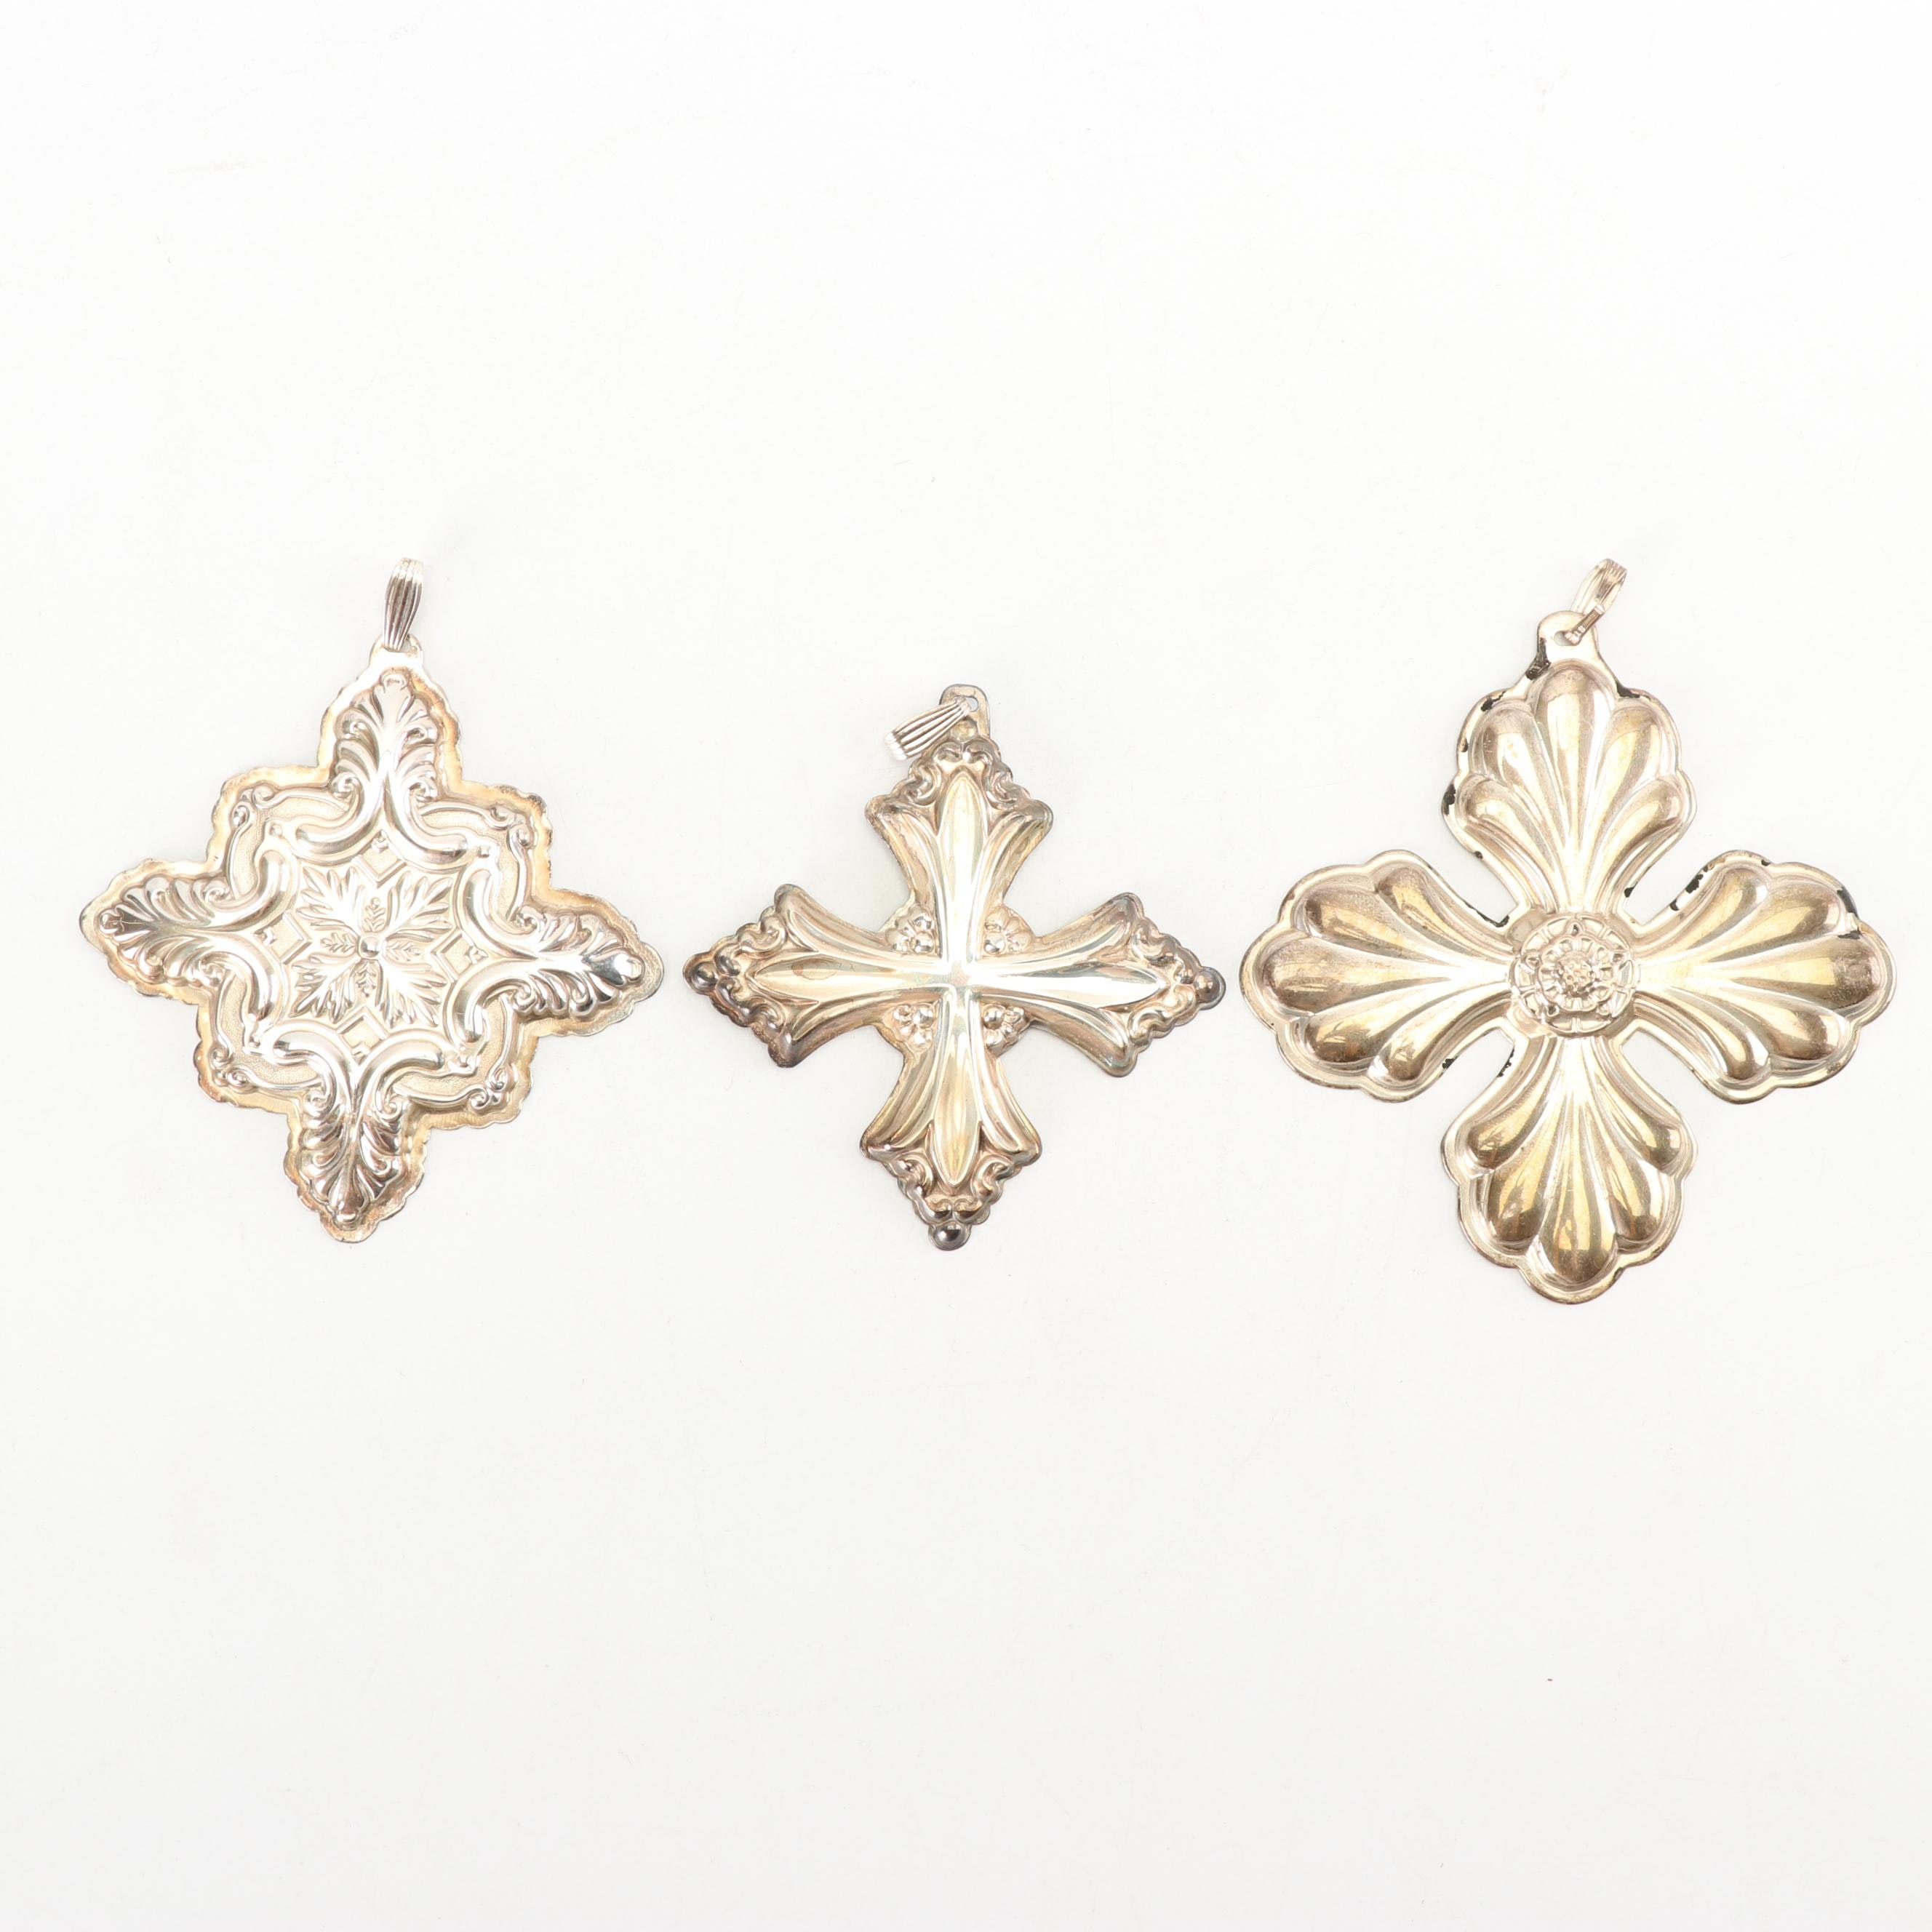 "Reed & Barton Sterling Silver ""Christmas Cross"" Ornaments"